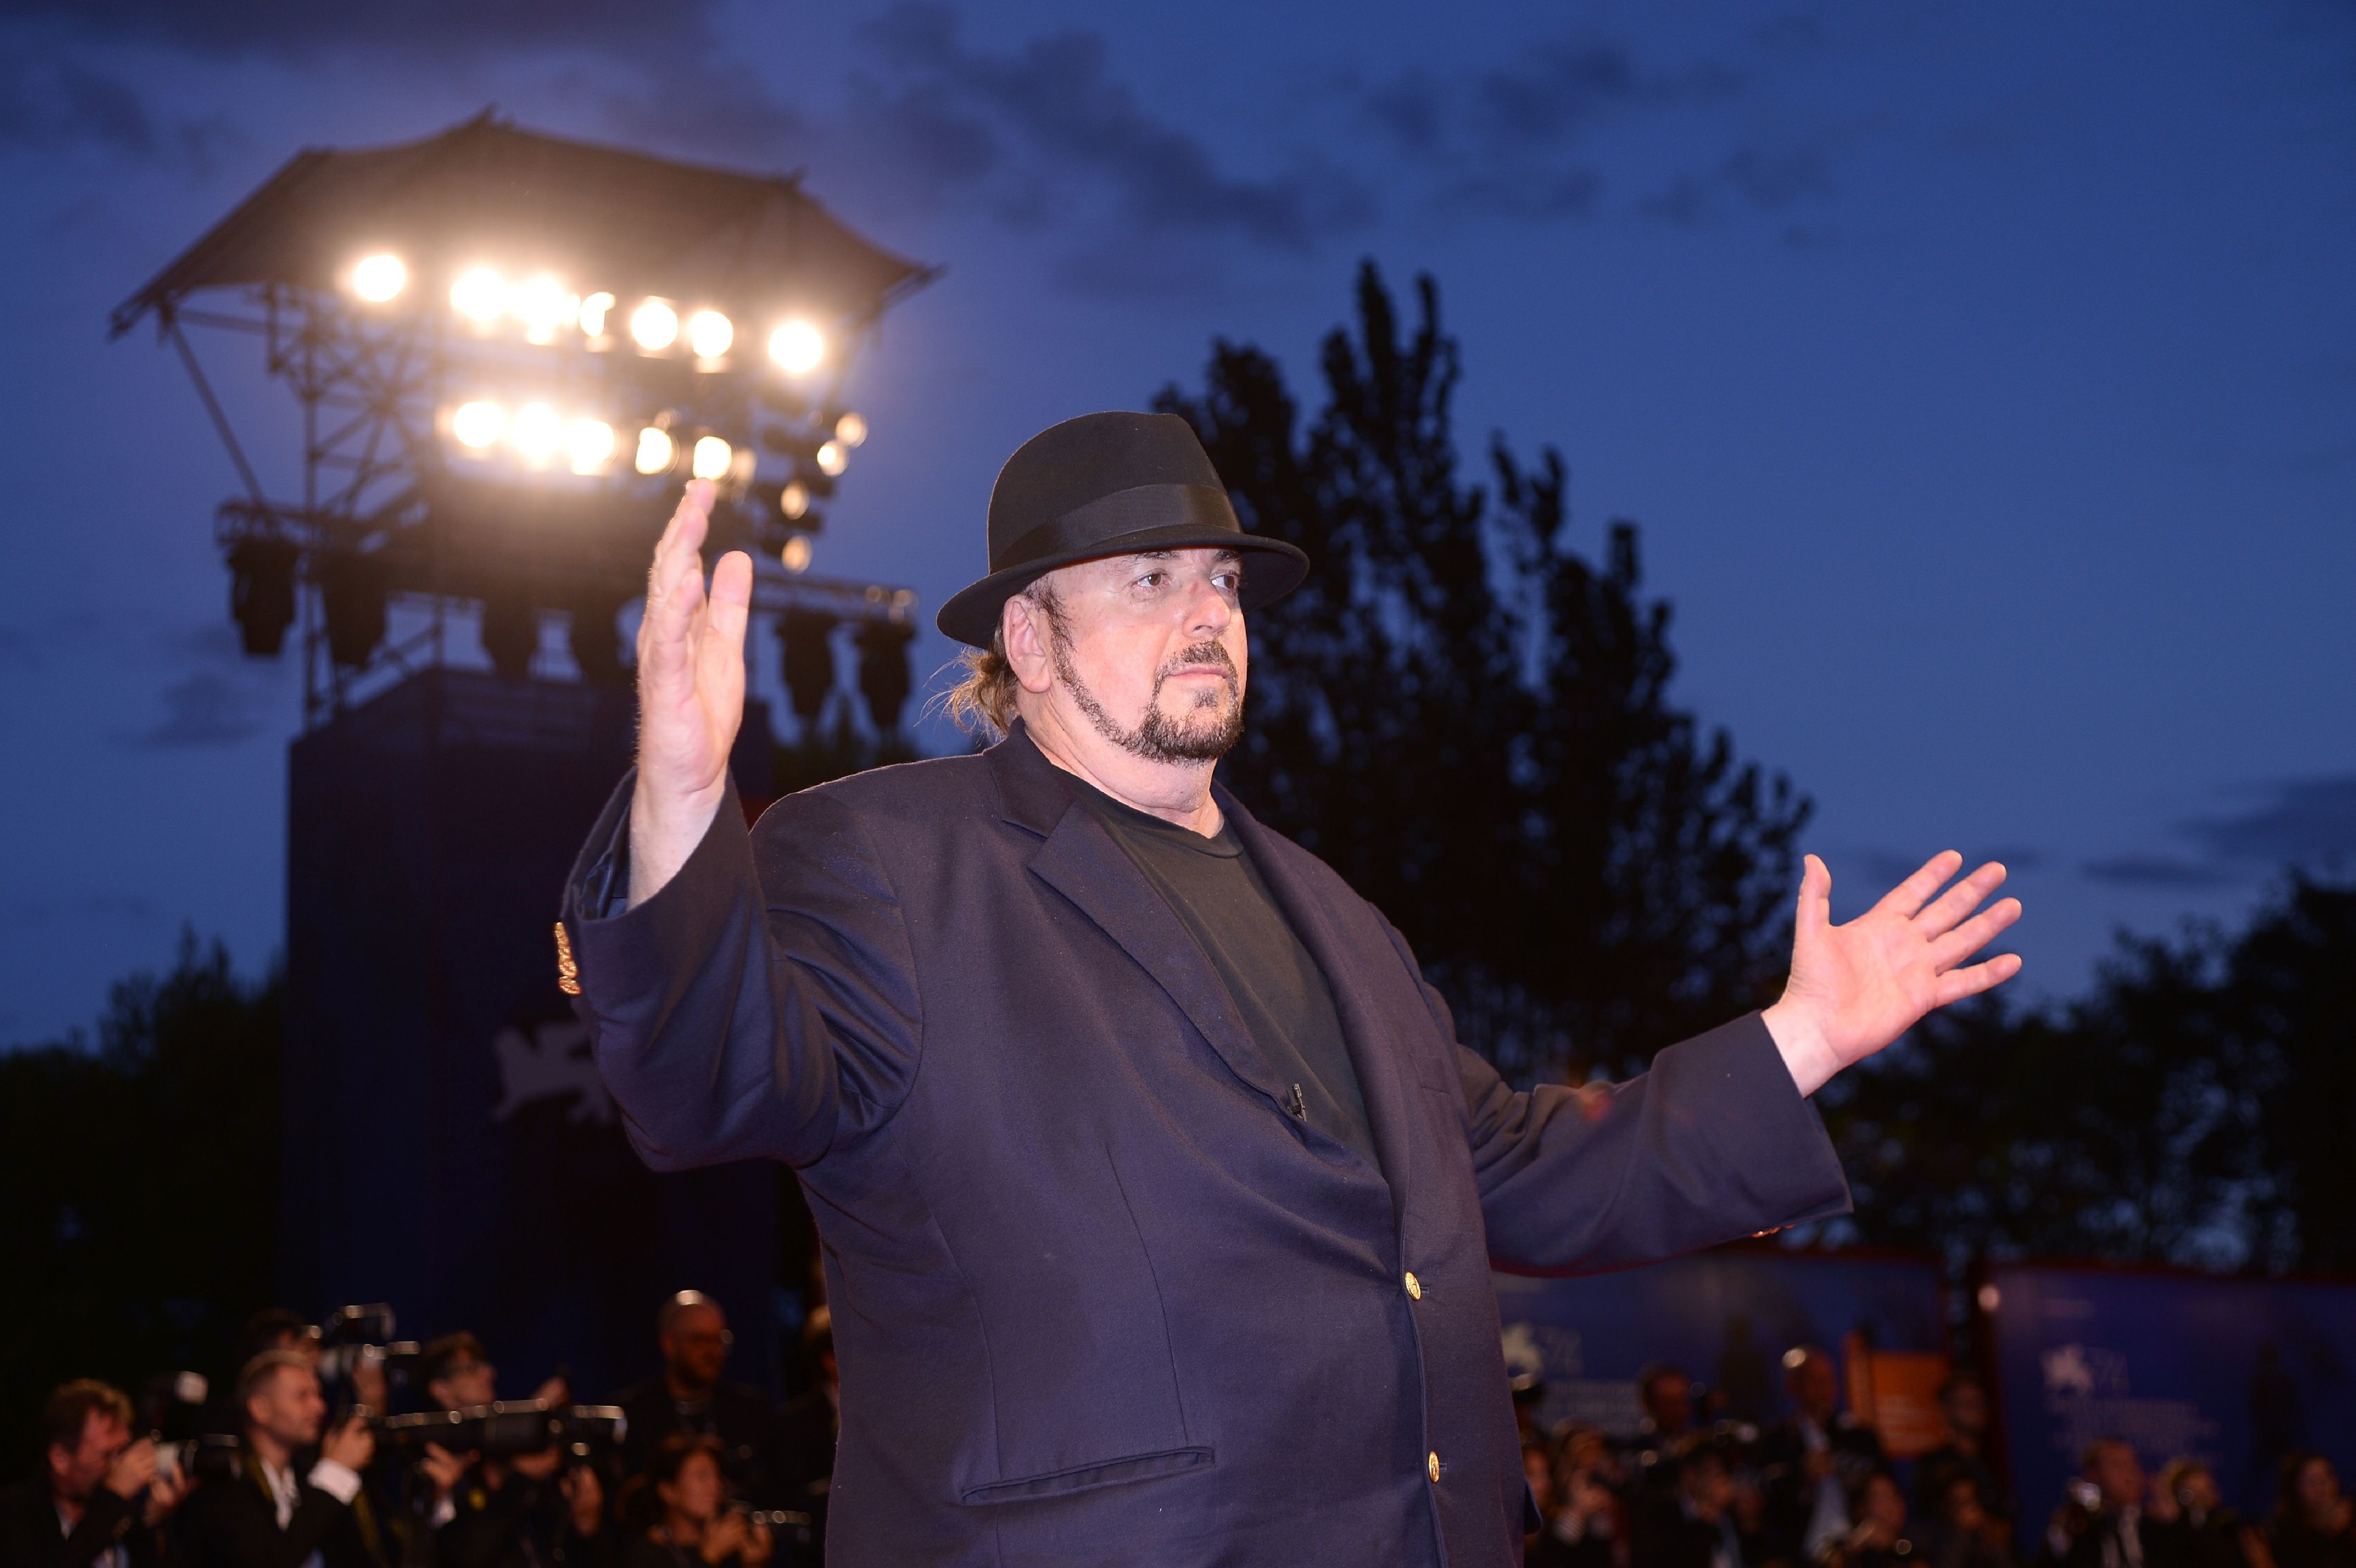 38 Women Accuse Director James Toback Of Sexual